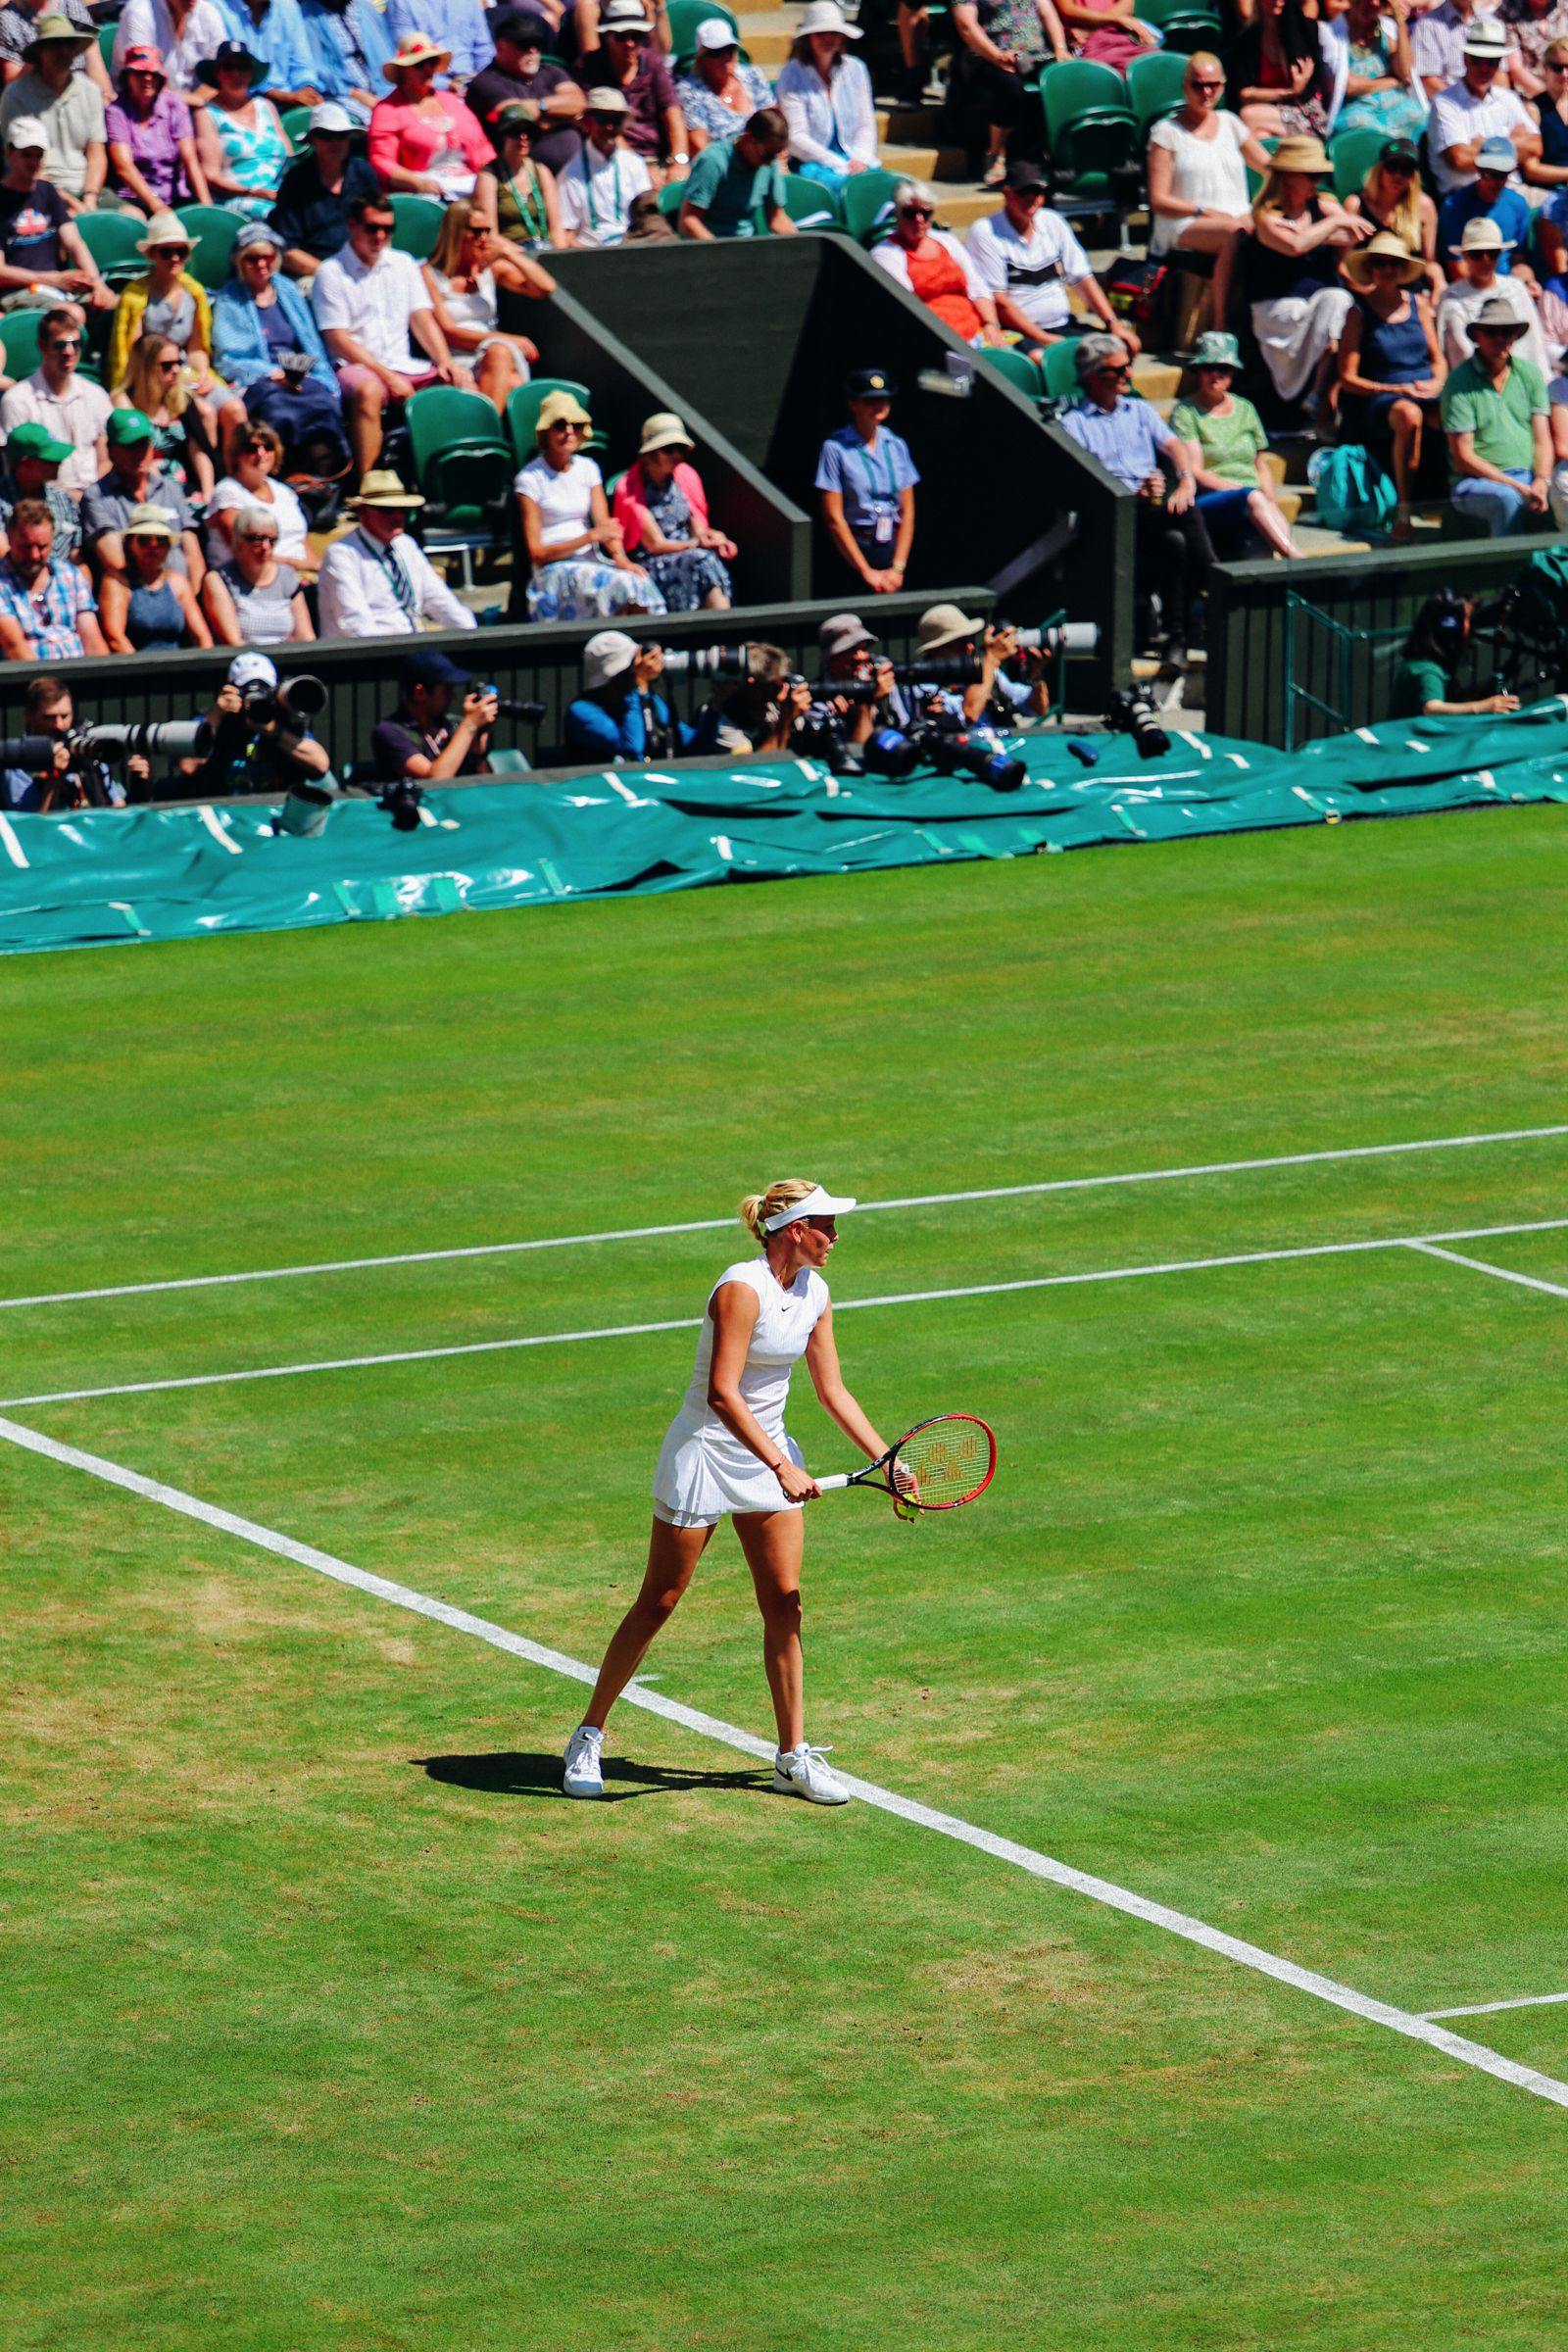 A DAY IN WIMBLEDON... || Watching Andy Murray, Rafael Nadal and Johanna Konta's Tennis Matches (7)